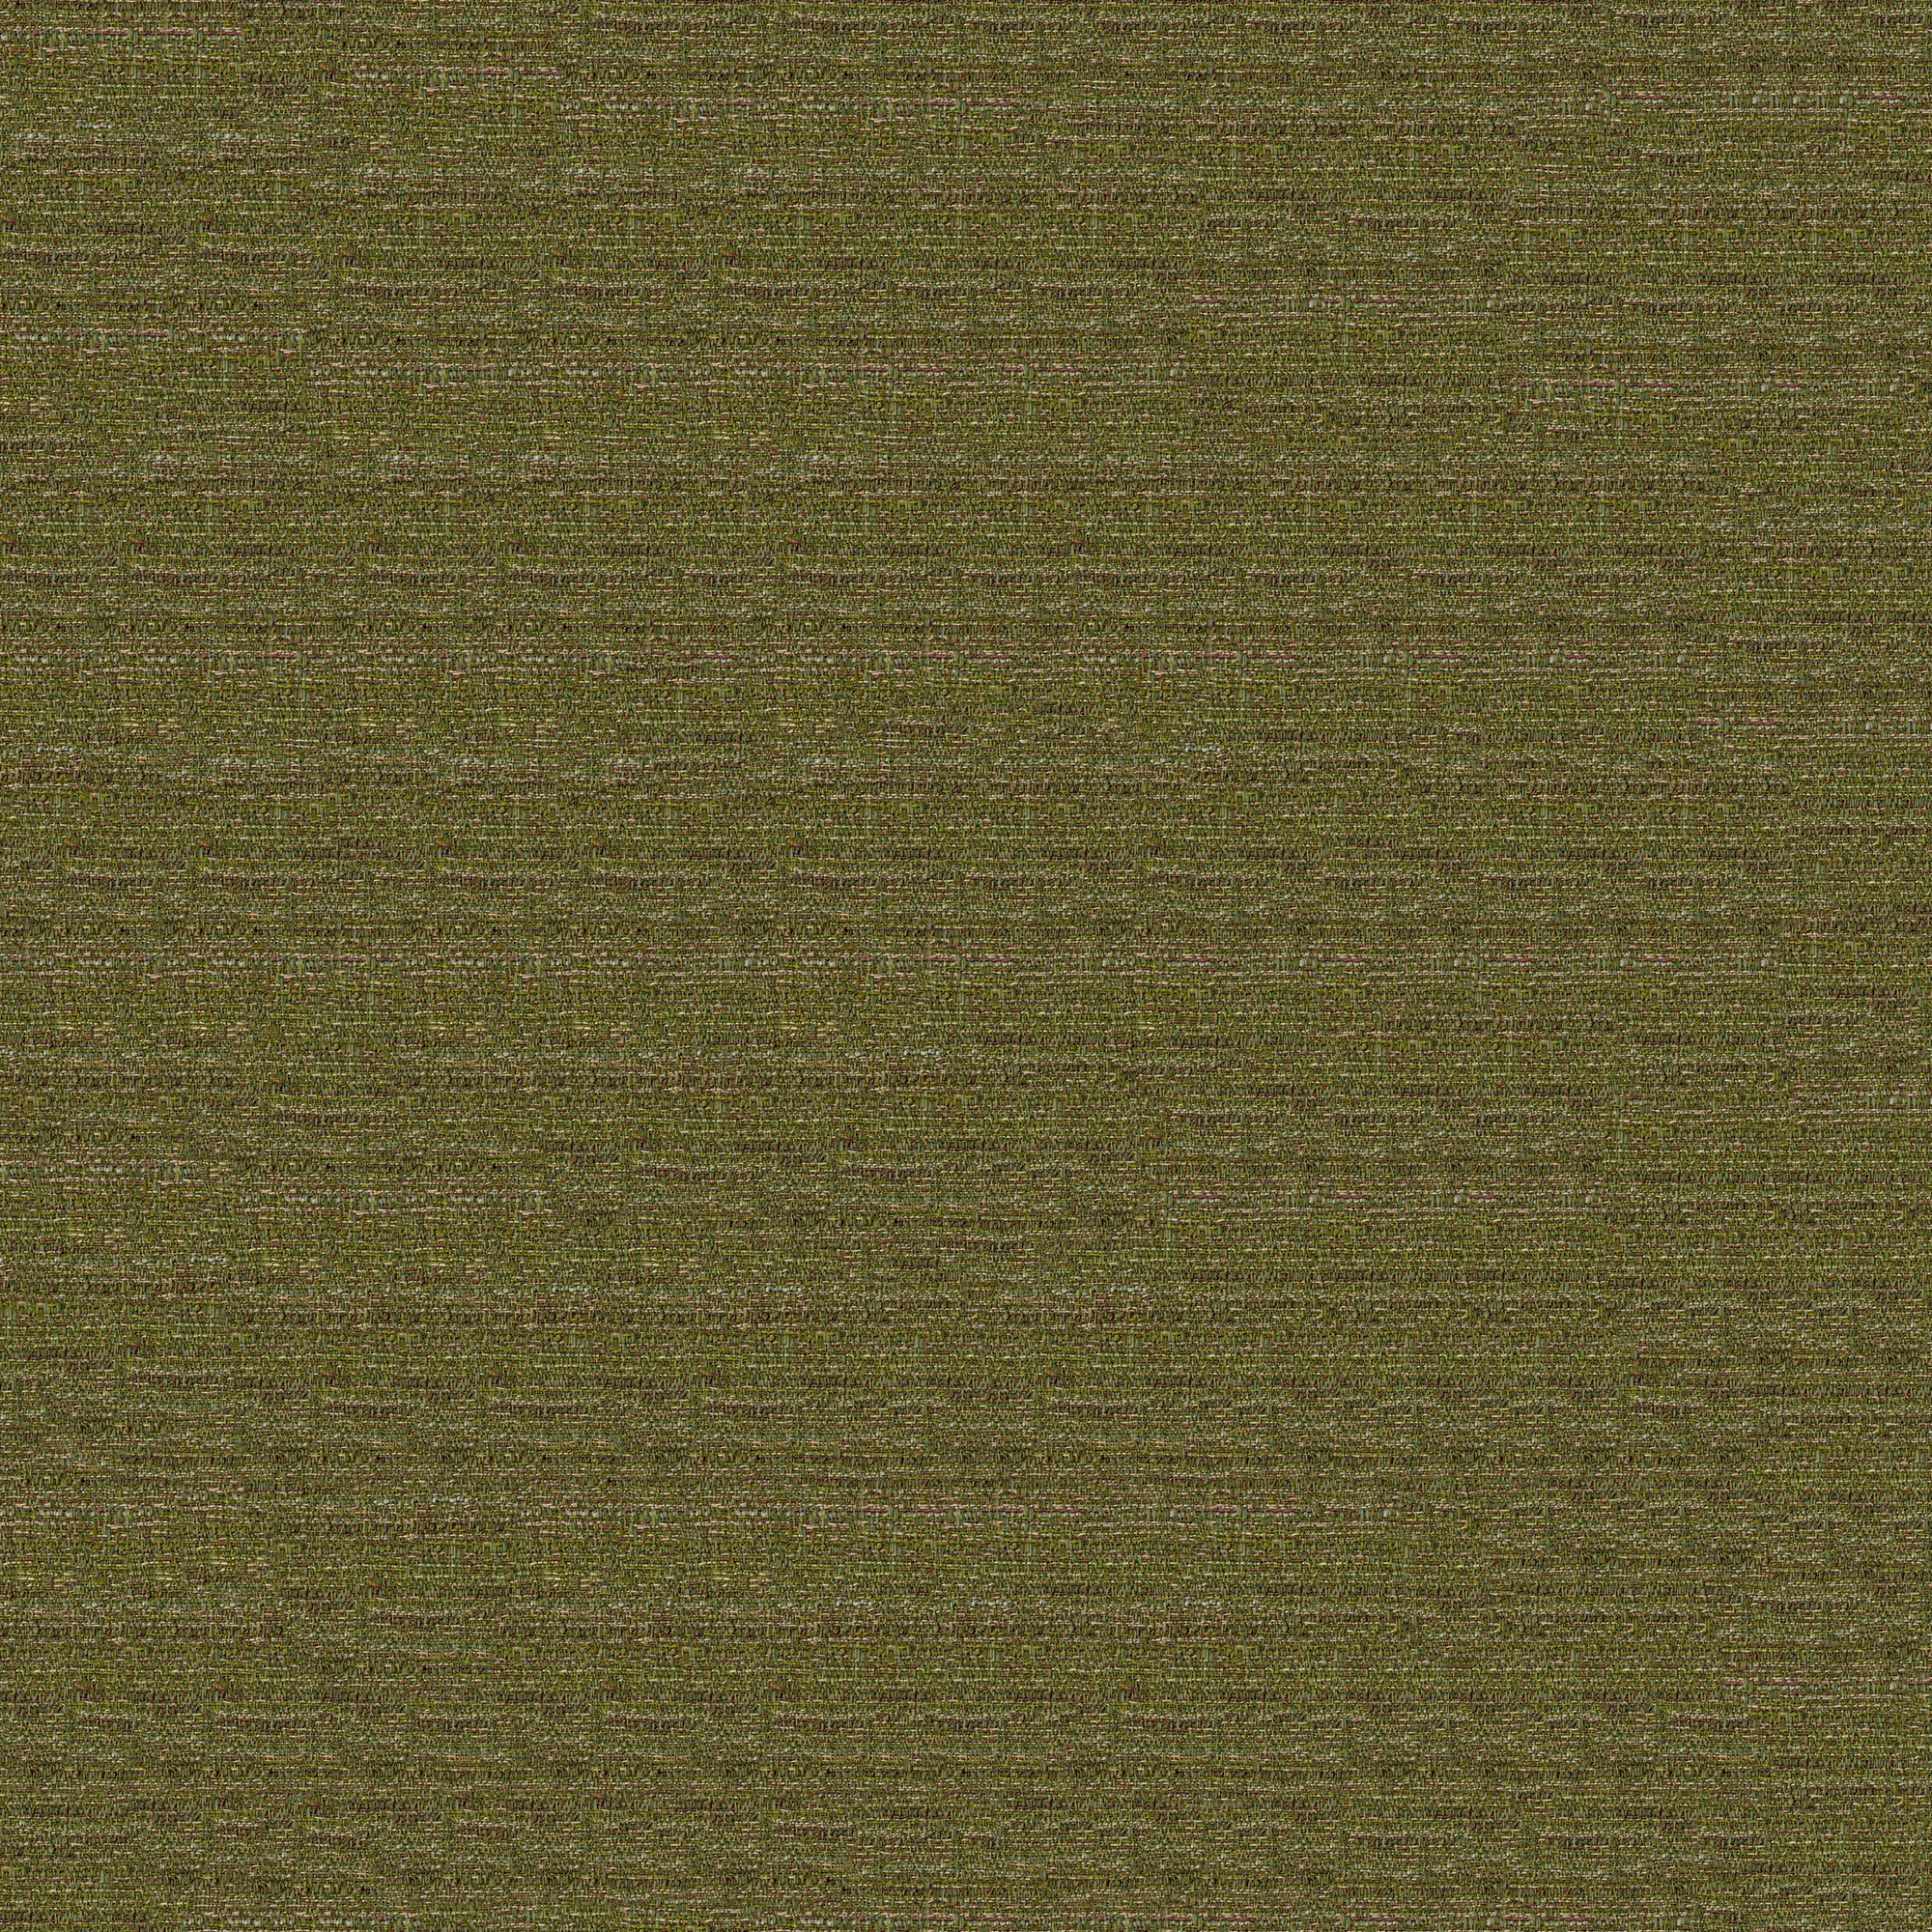 Commercial Upholstery Fabric Pattern